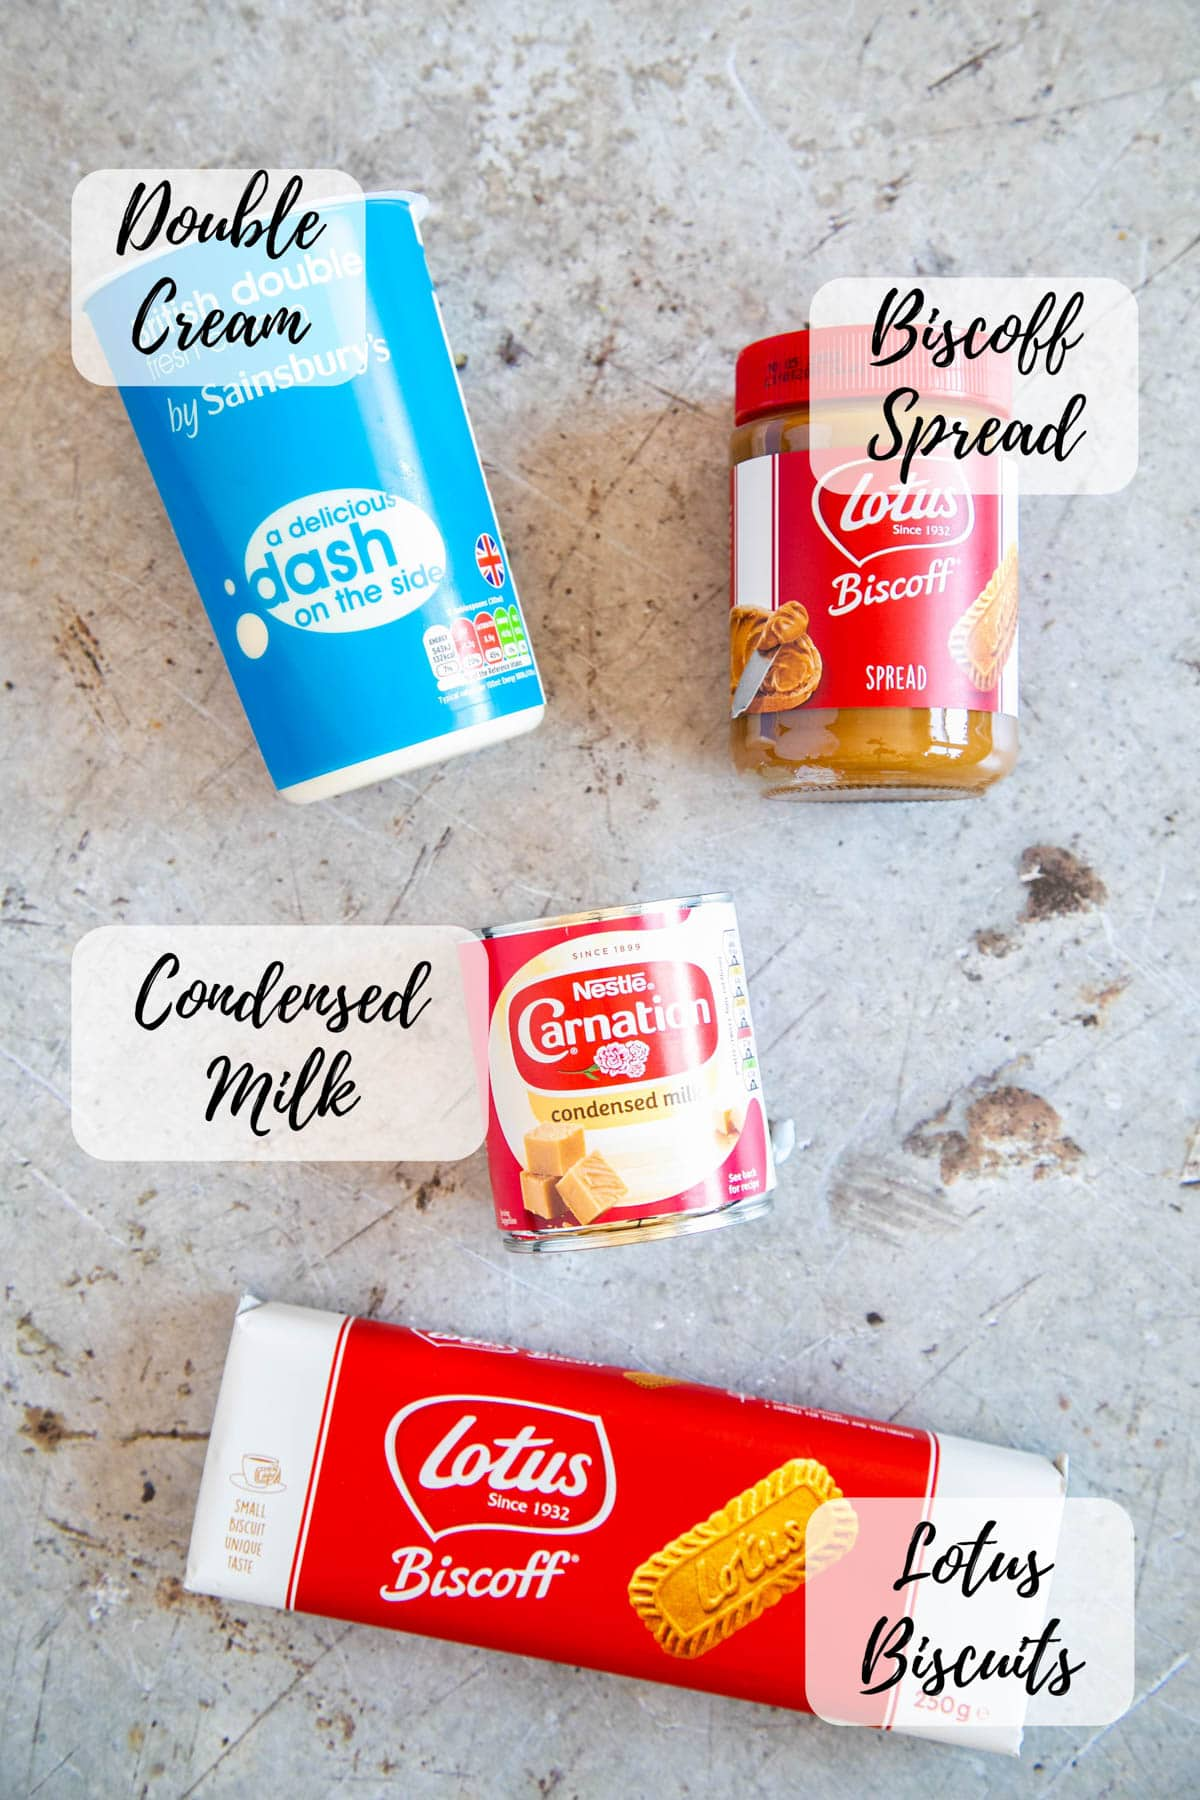 Ingredients for ice cream - double cream, Biscoff spread, condensed milk and Lotus biscuits.